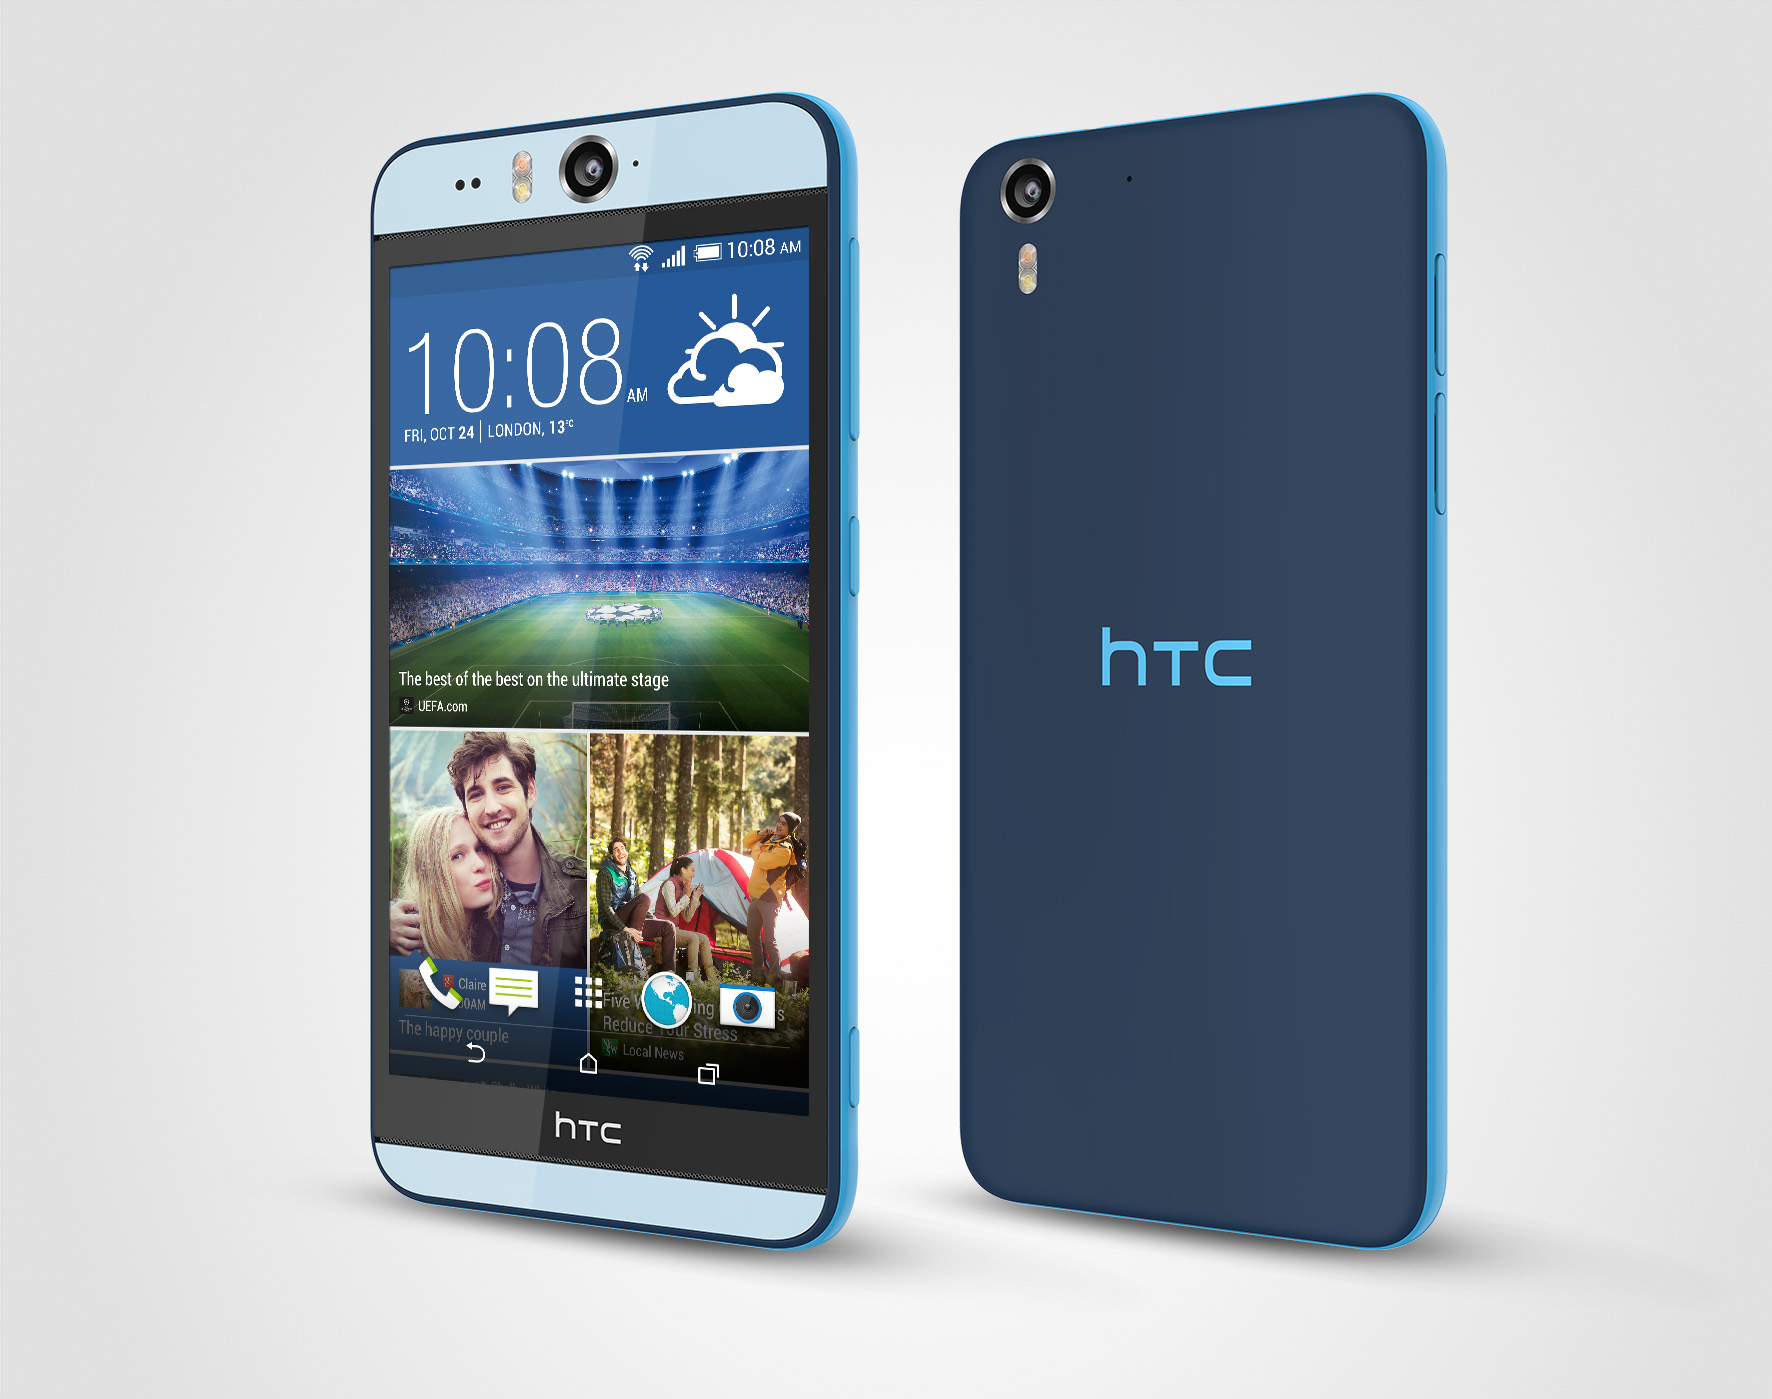 HTC Desire EYE and HTC Desire 816 updated to Lollipop 1